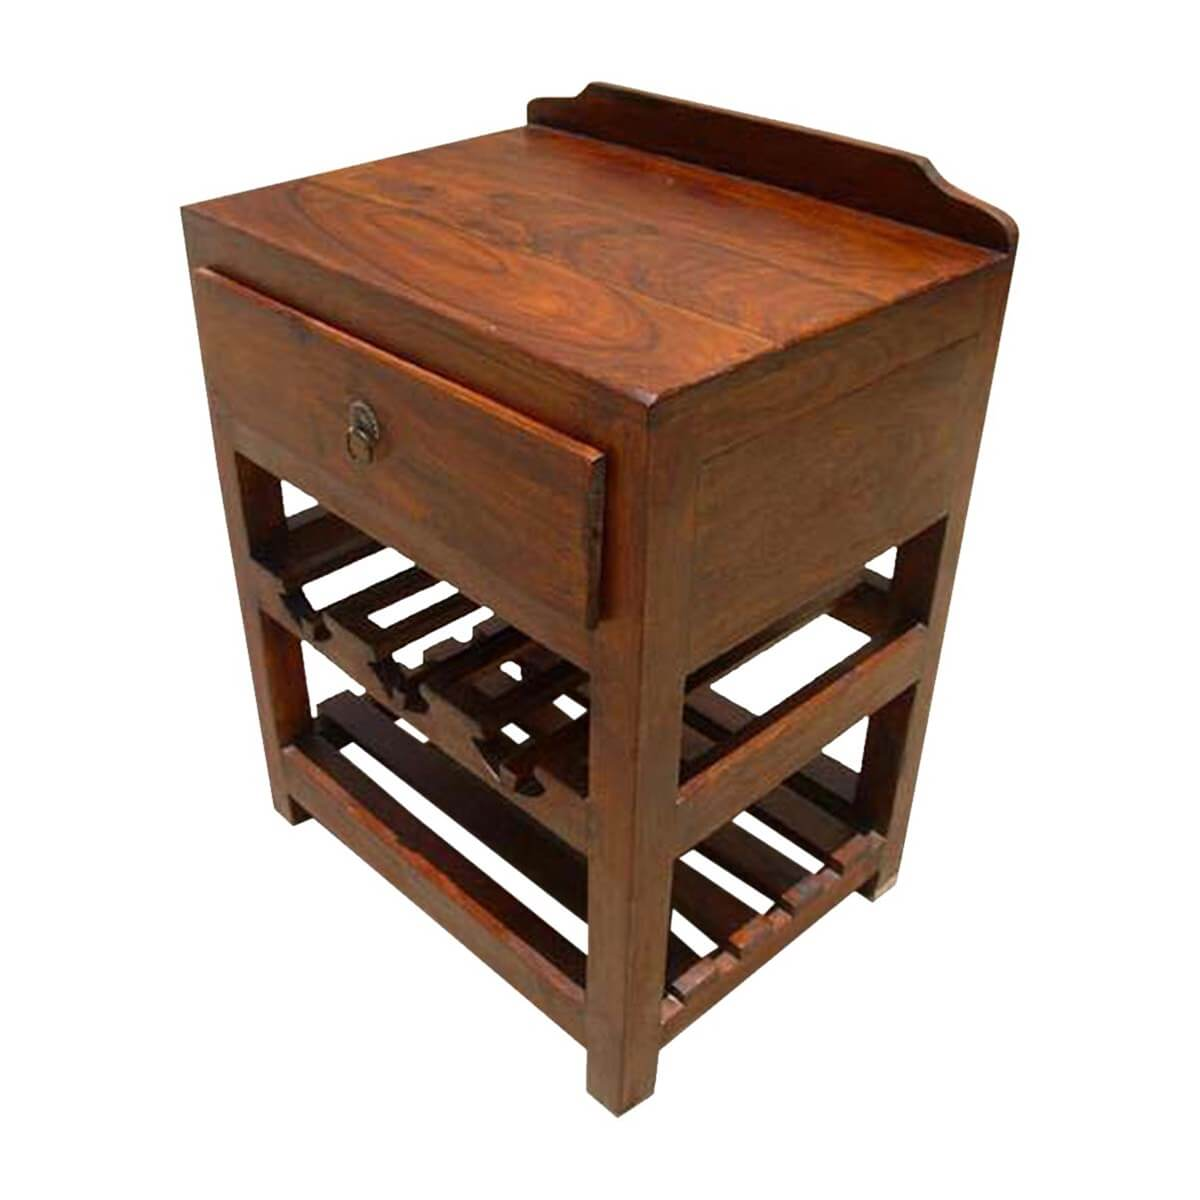 Amazing photo of  Bar Cabinets Wood Wine Rack Liquor Storage Drawer Shelves Side Table with #B27F19 color and 1200x1200 pixels